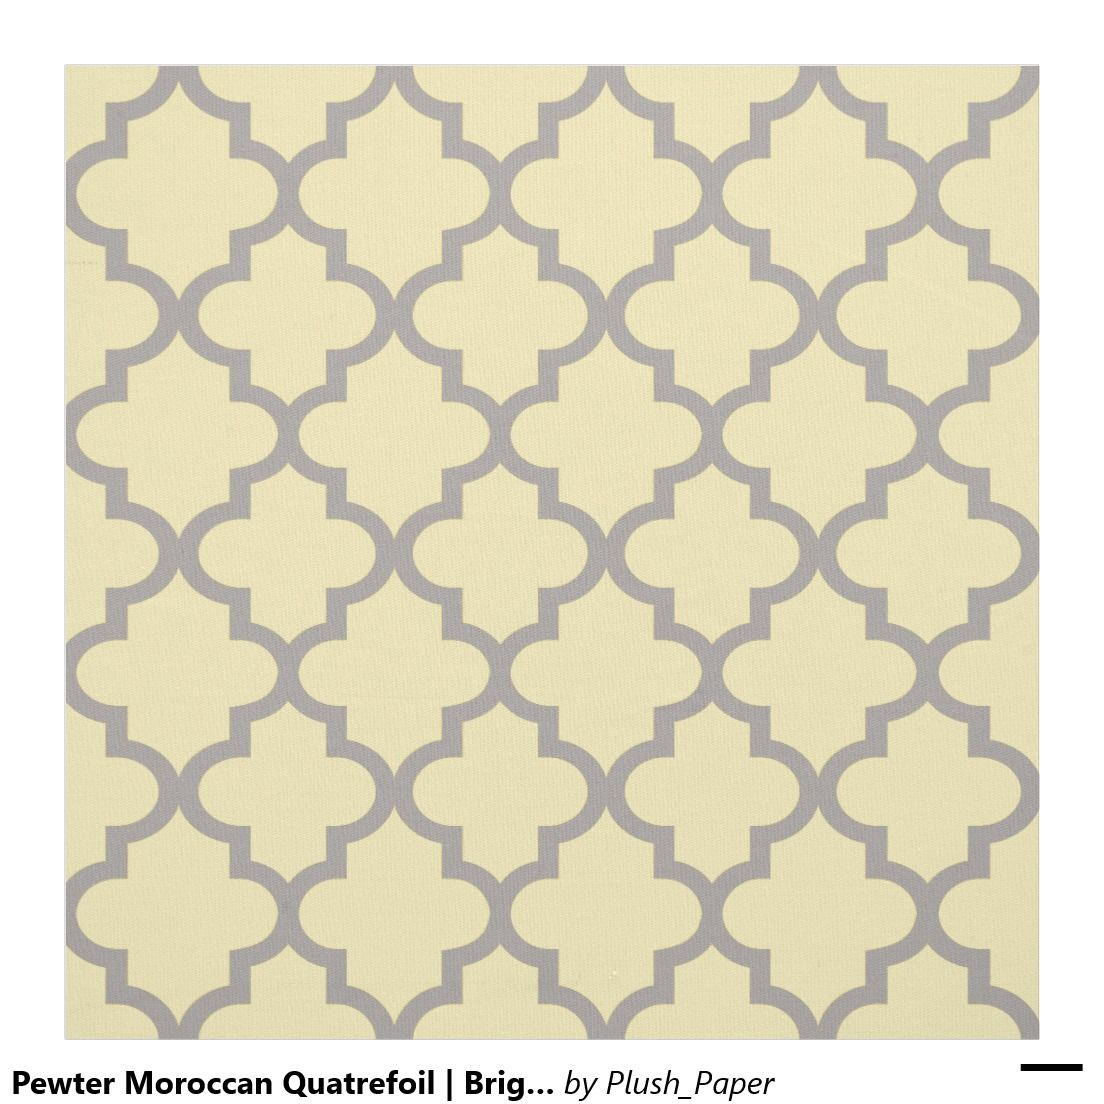 Pewter moroccan quatrefoil bright yellow pattern fabric